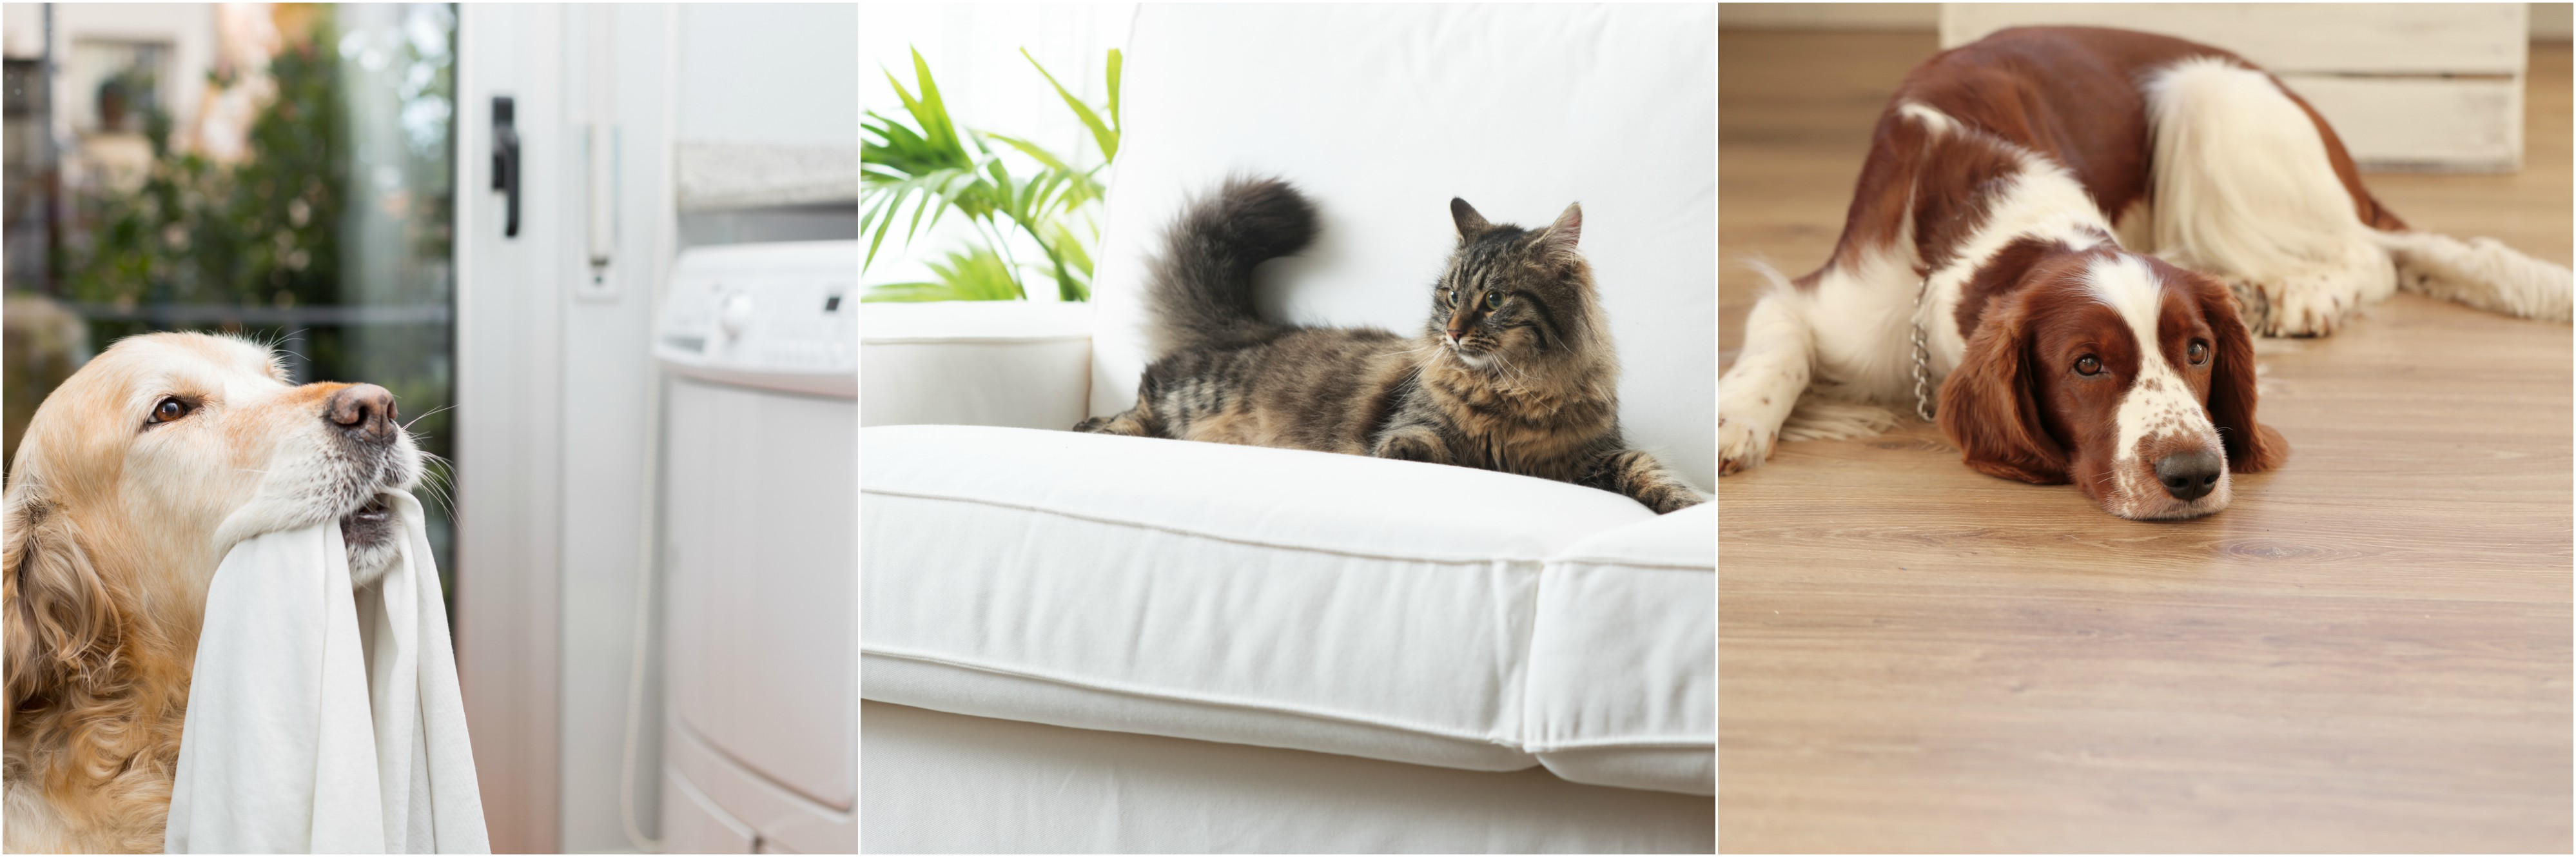 Your pets love to lounge around the apartment, but try to keep your clothing out of reach, and simple items such as lint rollers and microfiber towels on hand for quick cleaning.